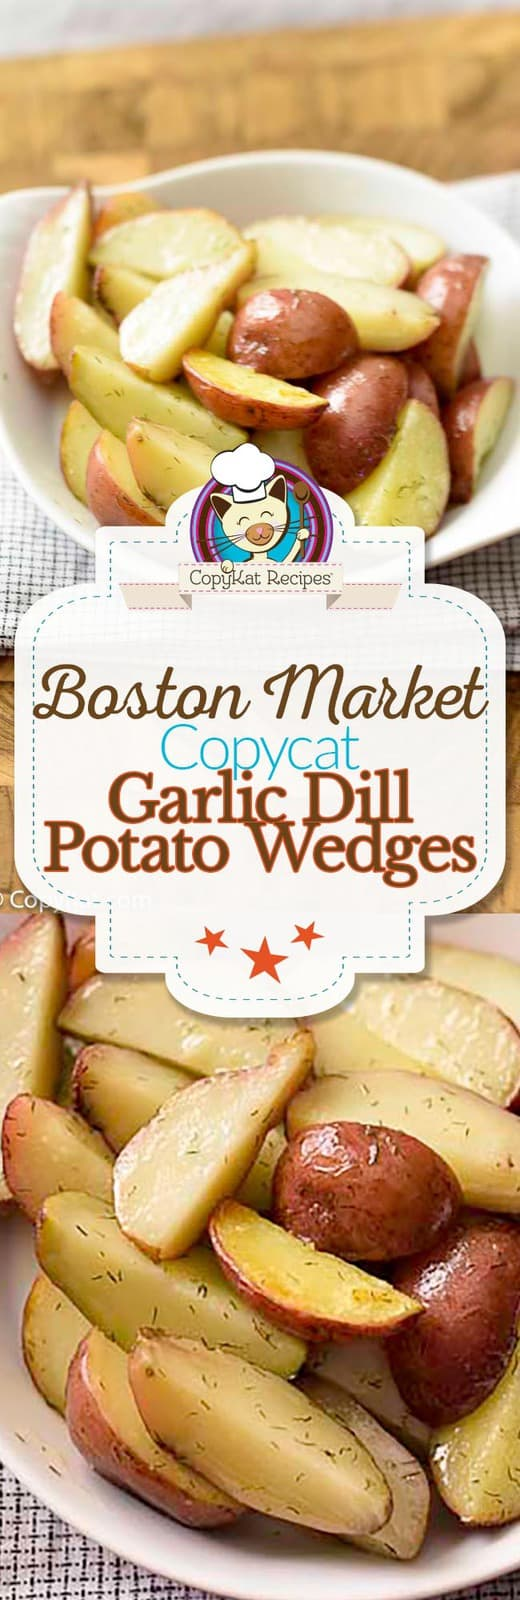 You can make Boston Market Garlic Dill Potato Wedges at home with this easy copycat recipe.